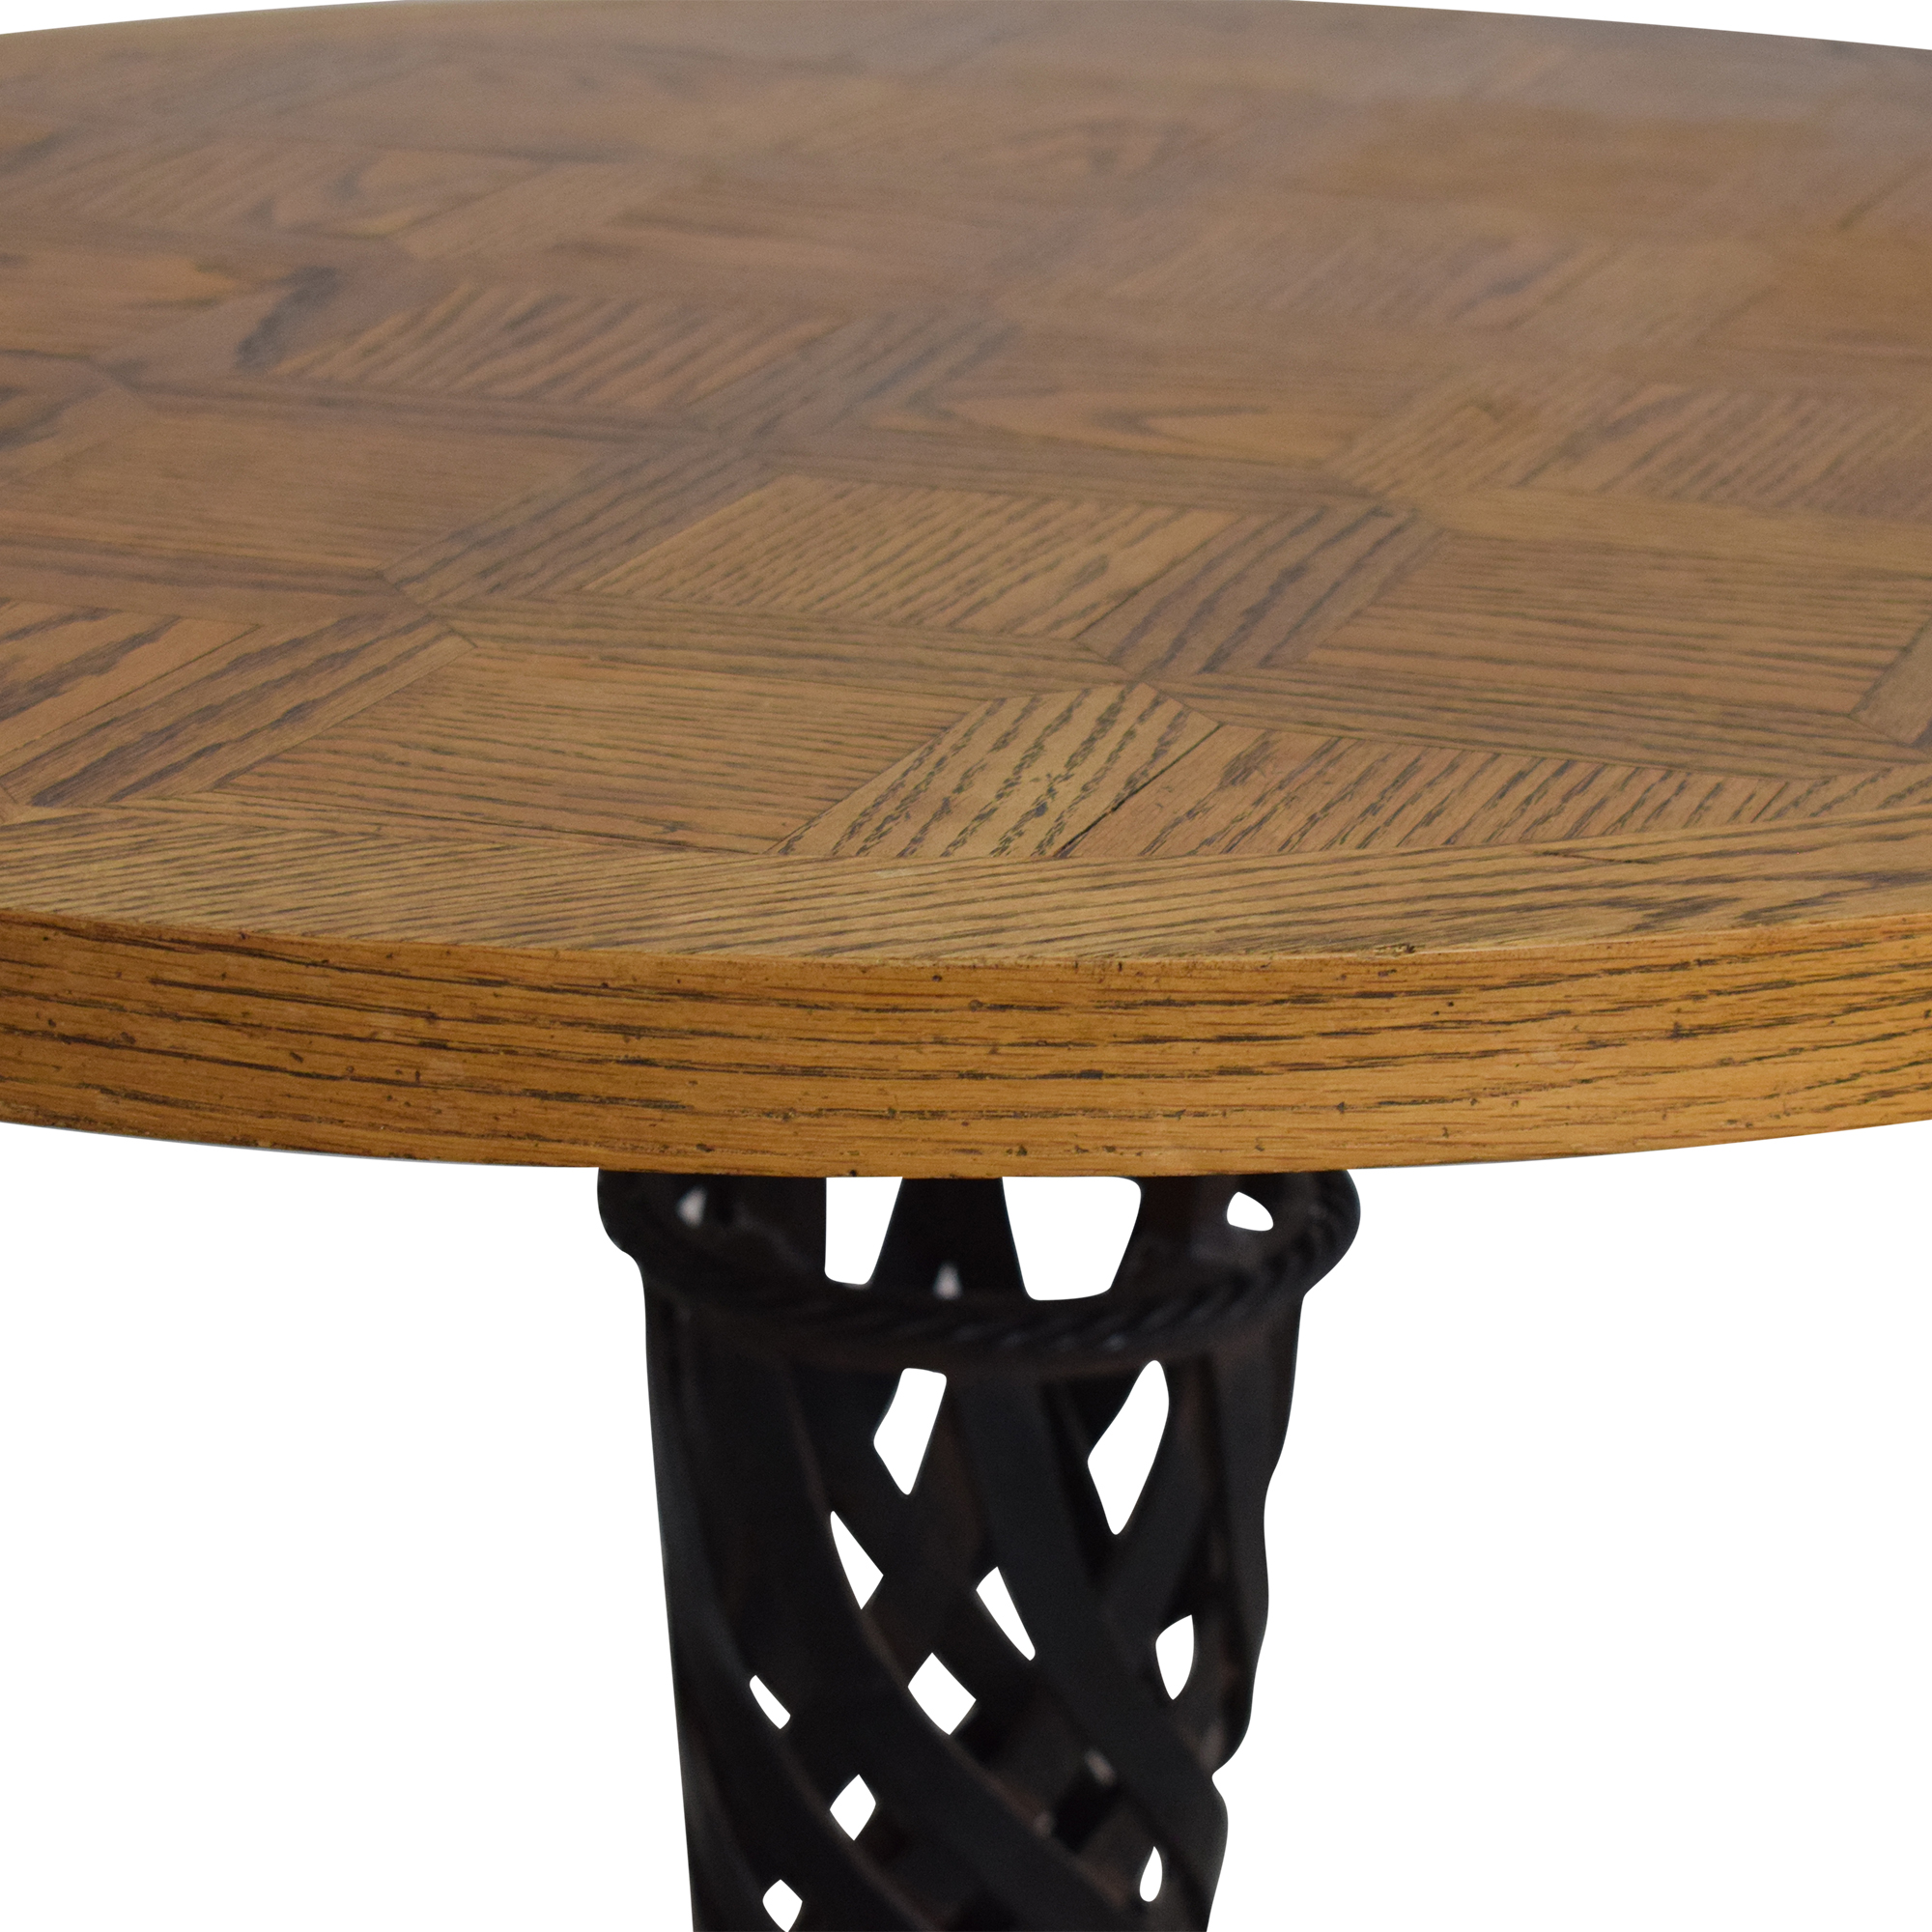 Parquet Round Table used